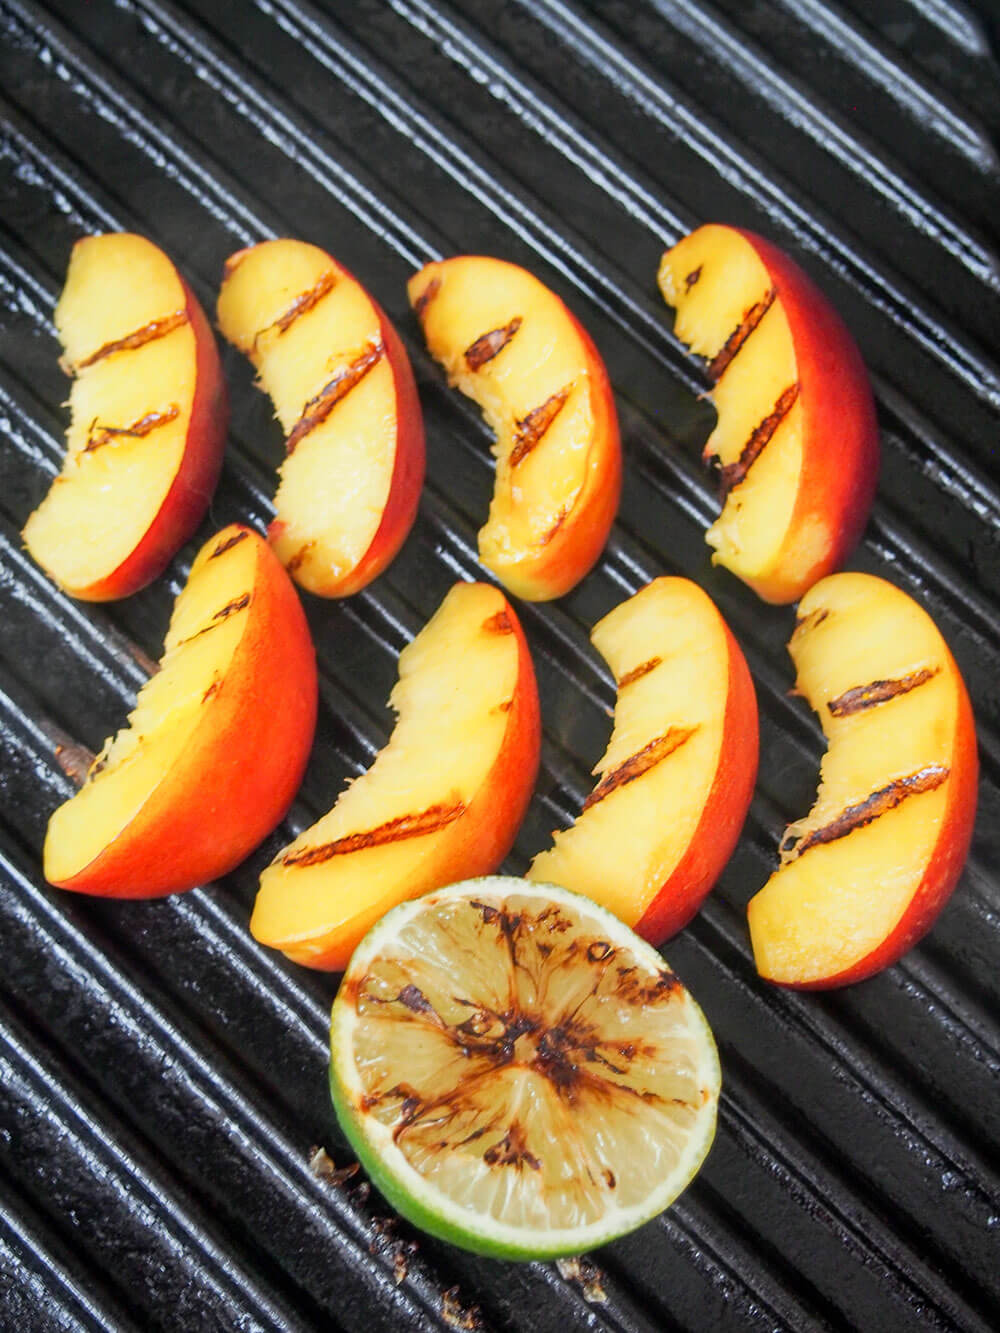 grilling peach and lime for mojito